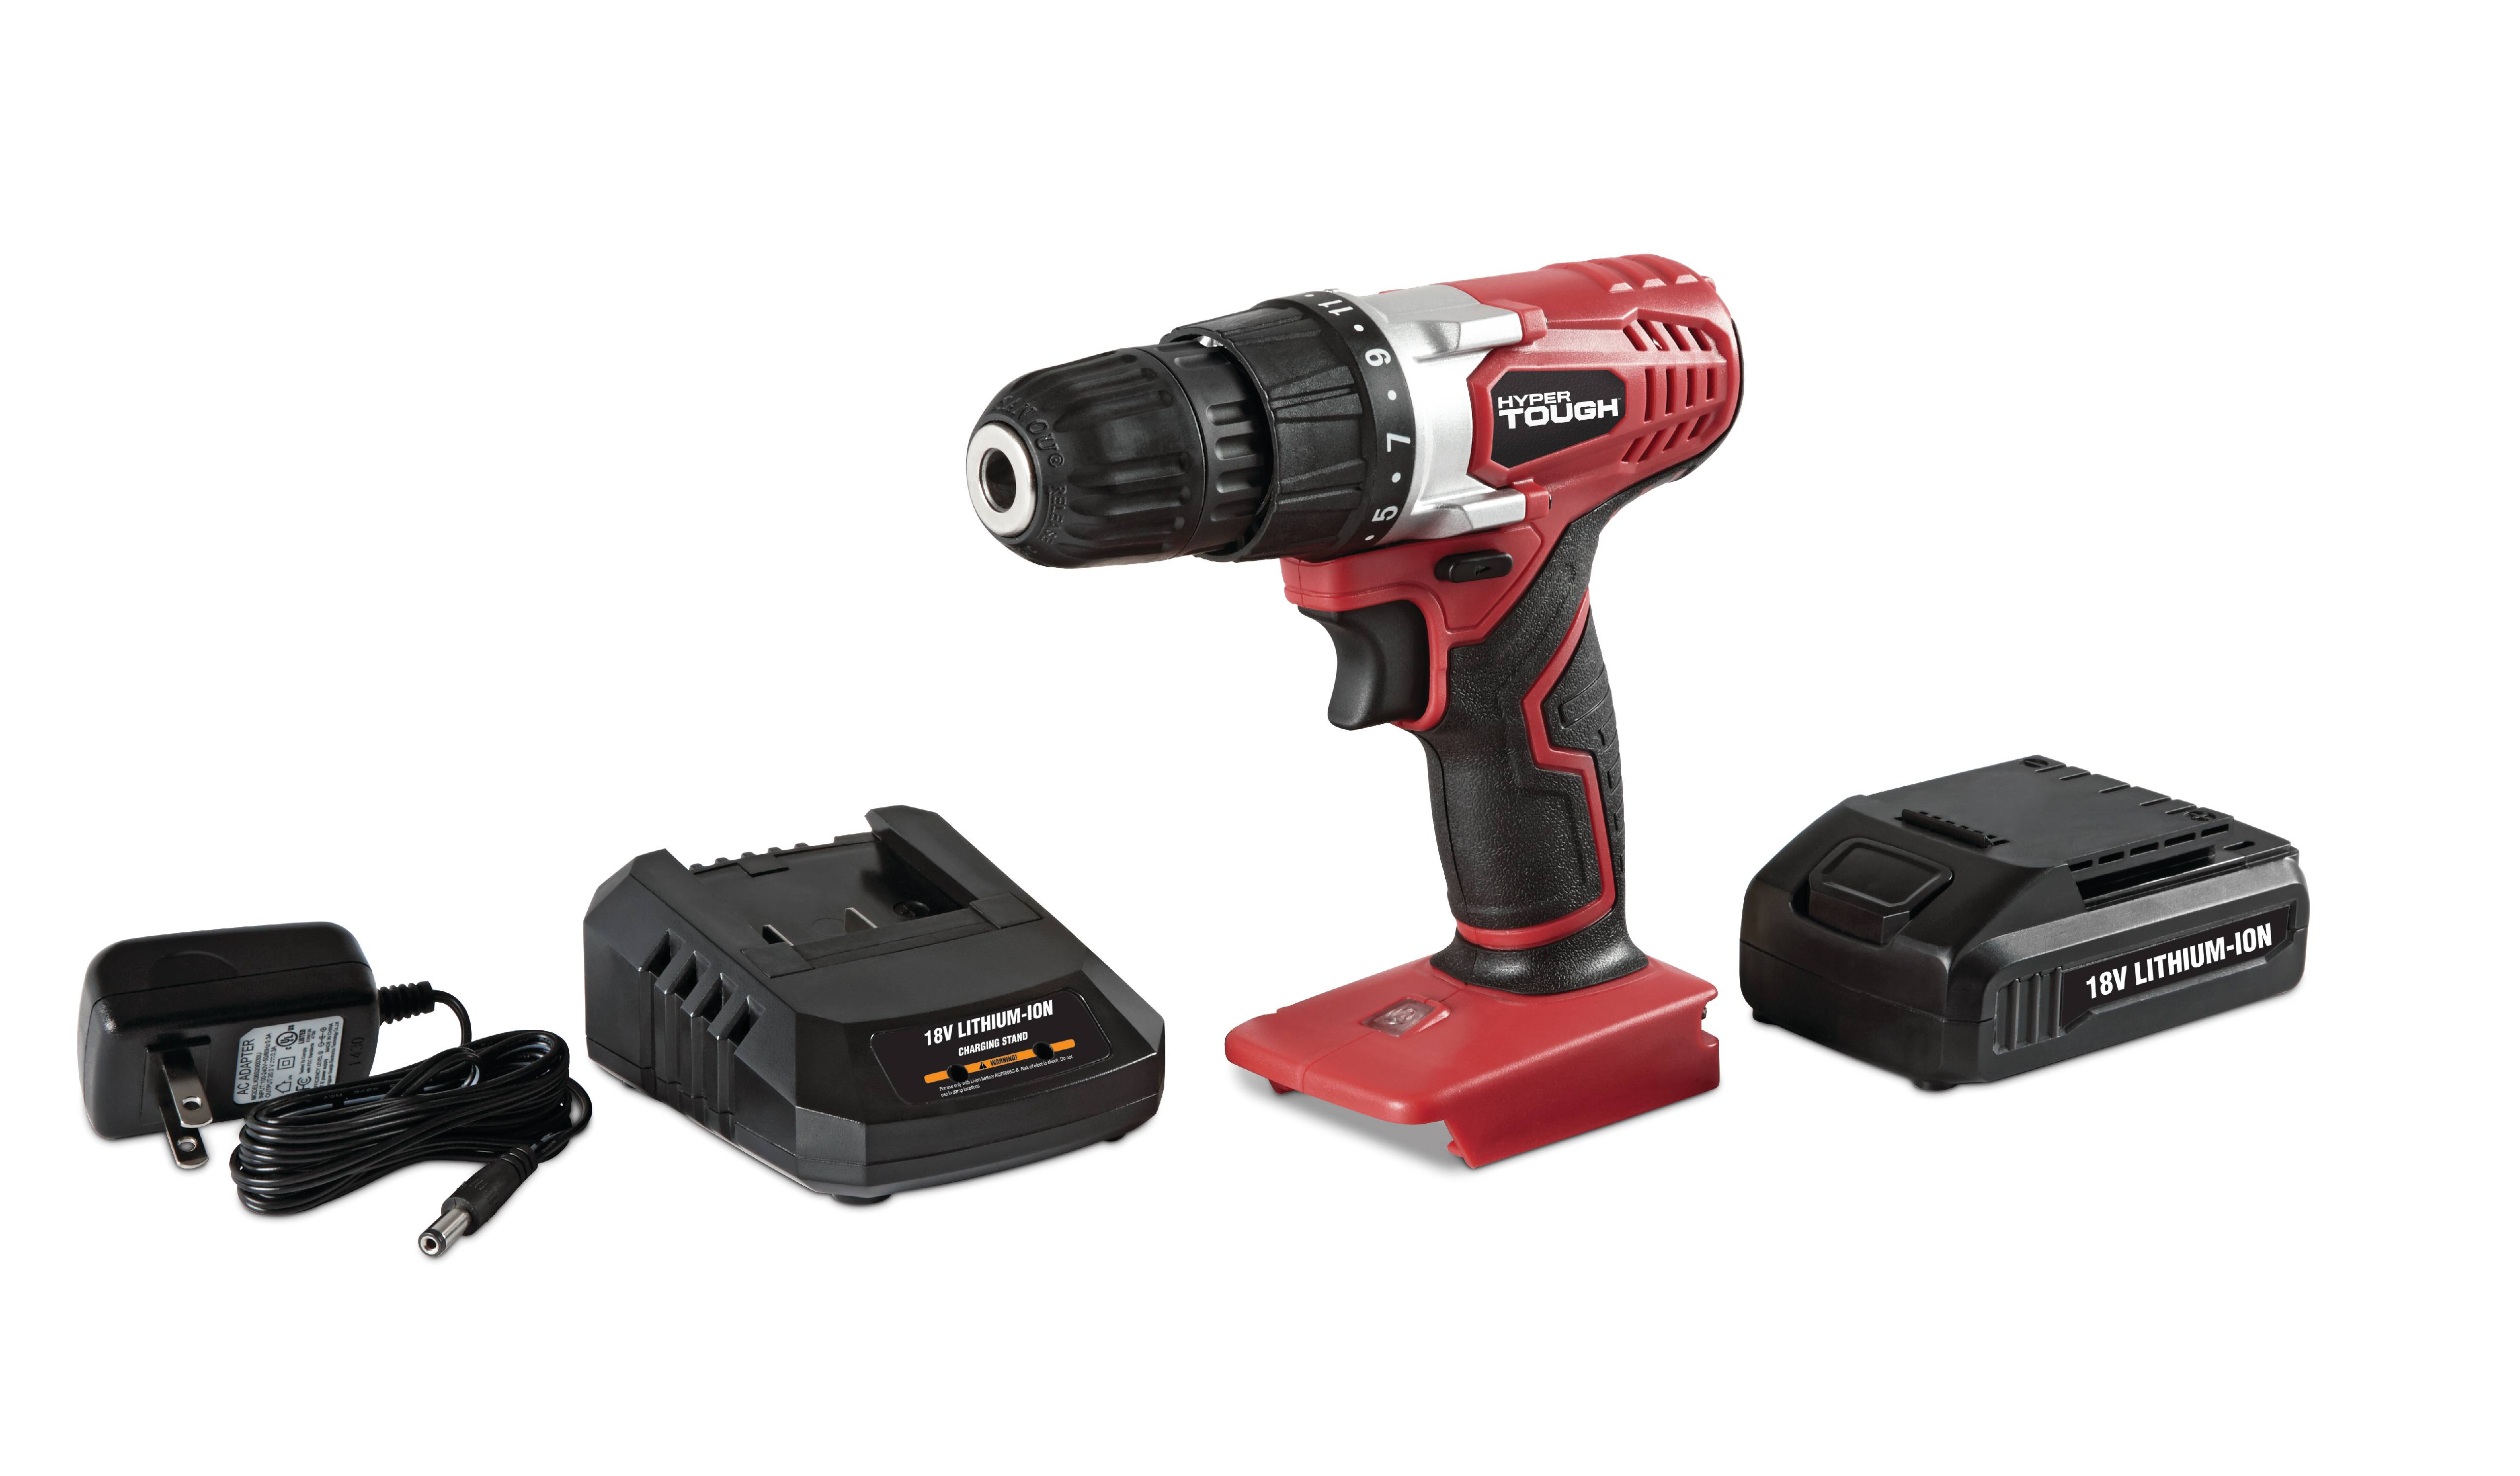 Hyper Tough AQ75032G 20V Lithium Ion Drill With Battery And Charger ...